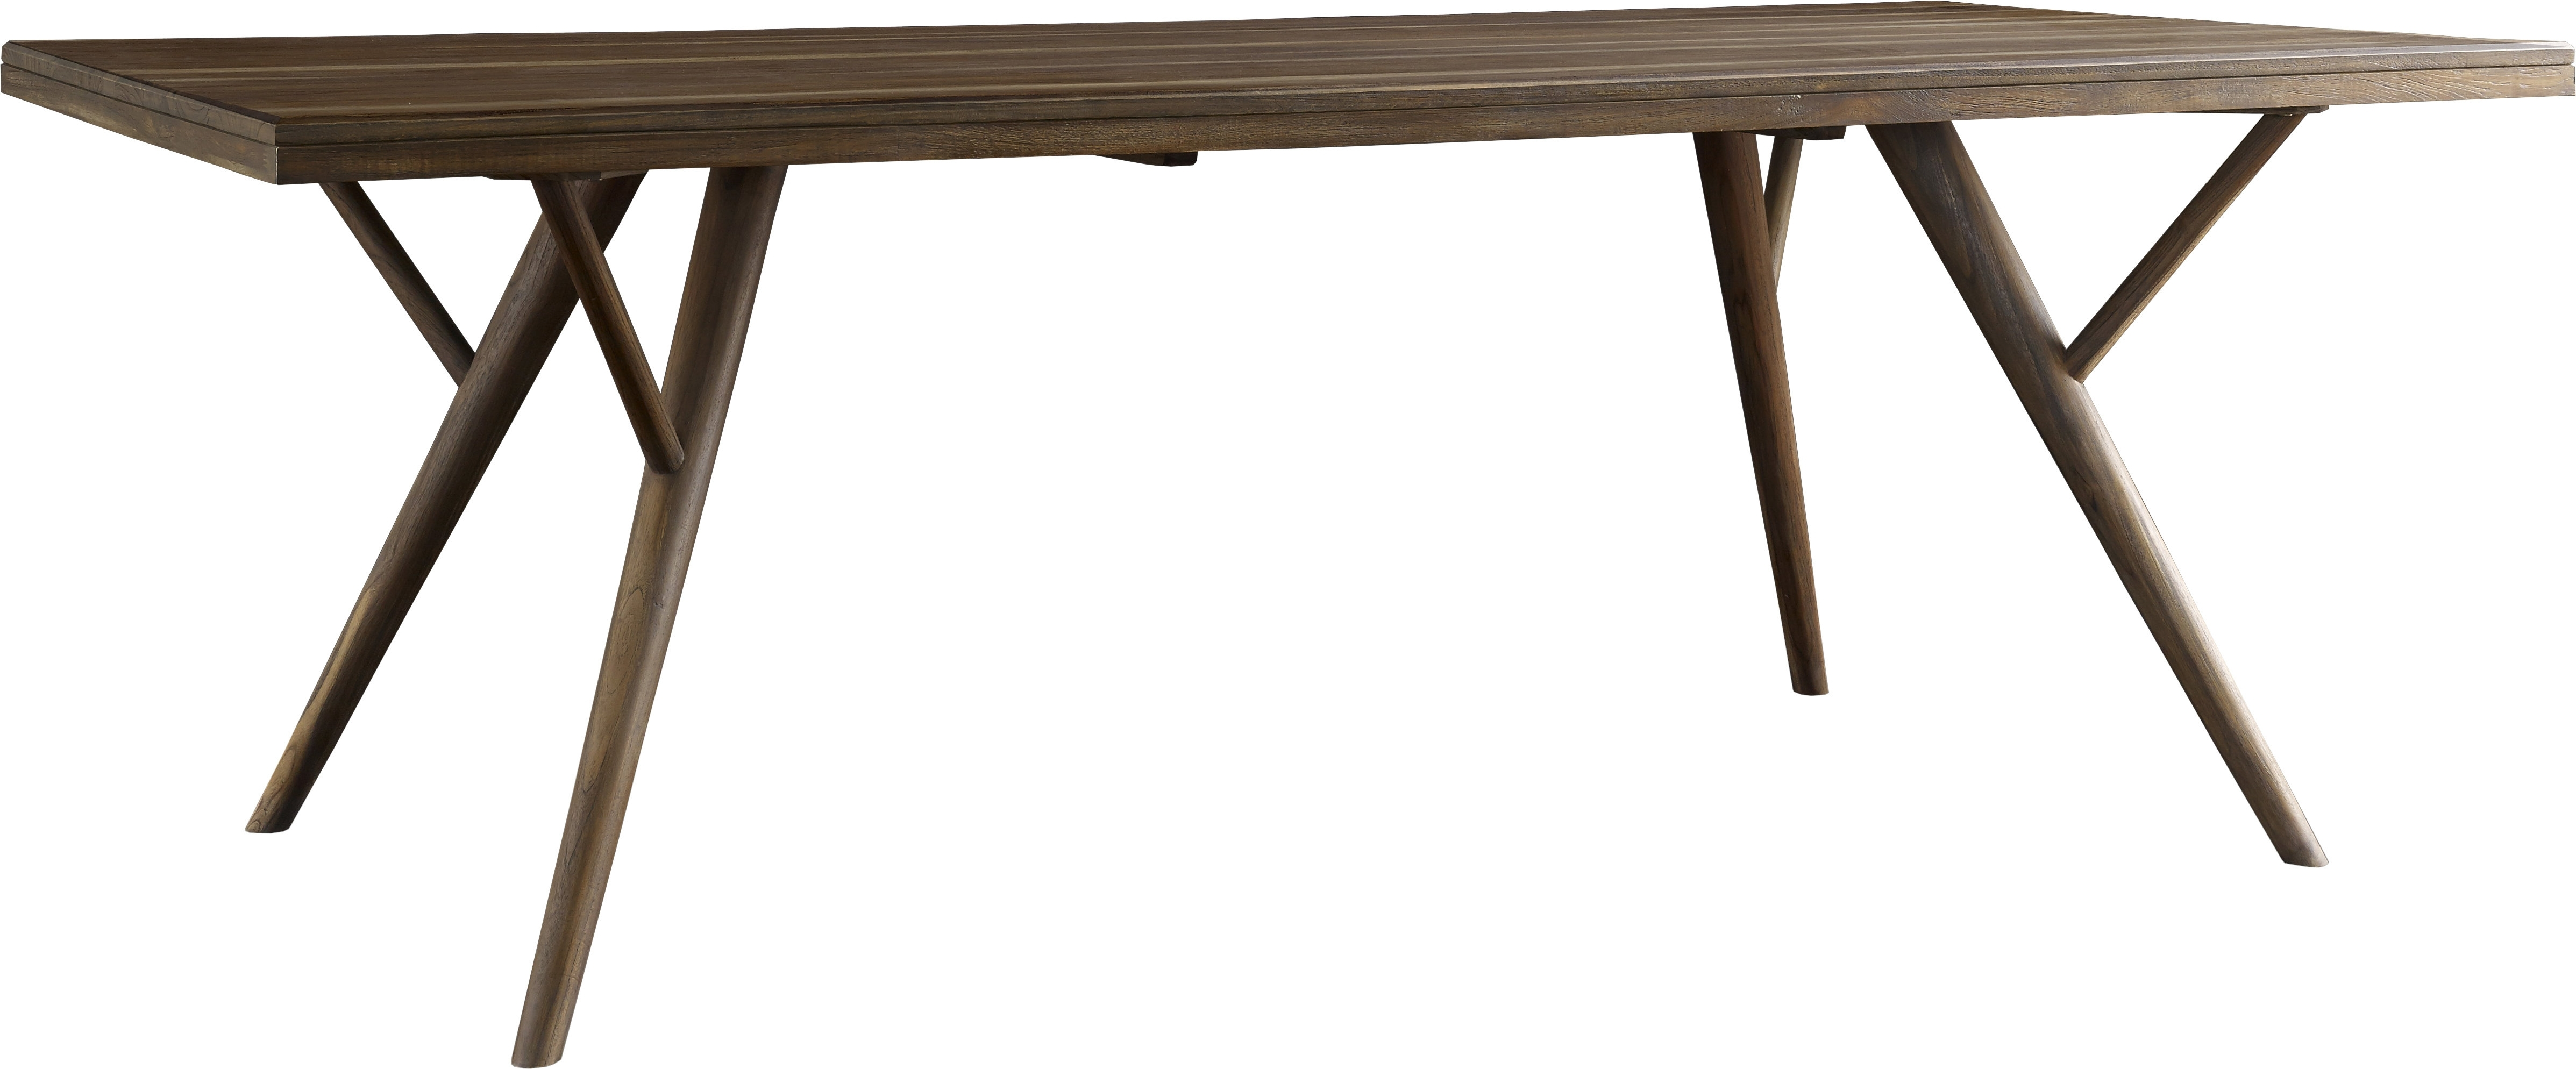 Brownstone Furniture Crawford Dining Table | Wayfair For Most Up To Date Crawford Rectangle Dining Tables (Image 1 of 20)